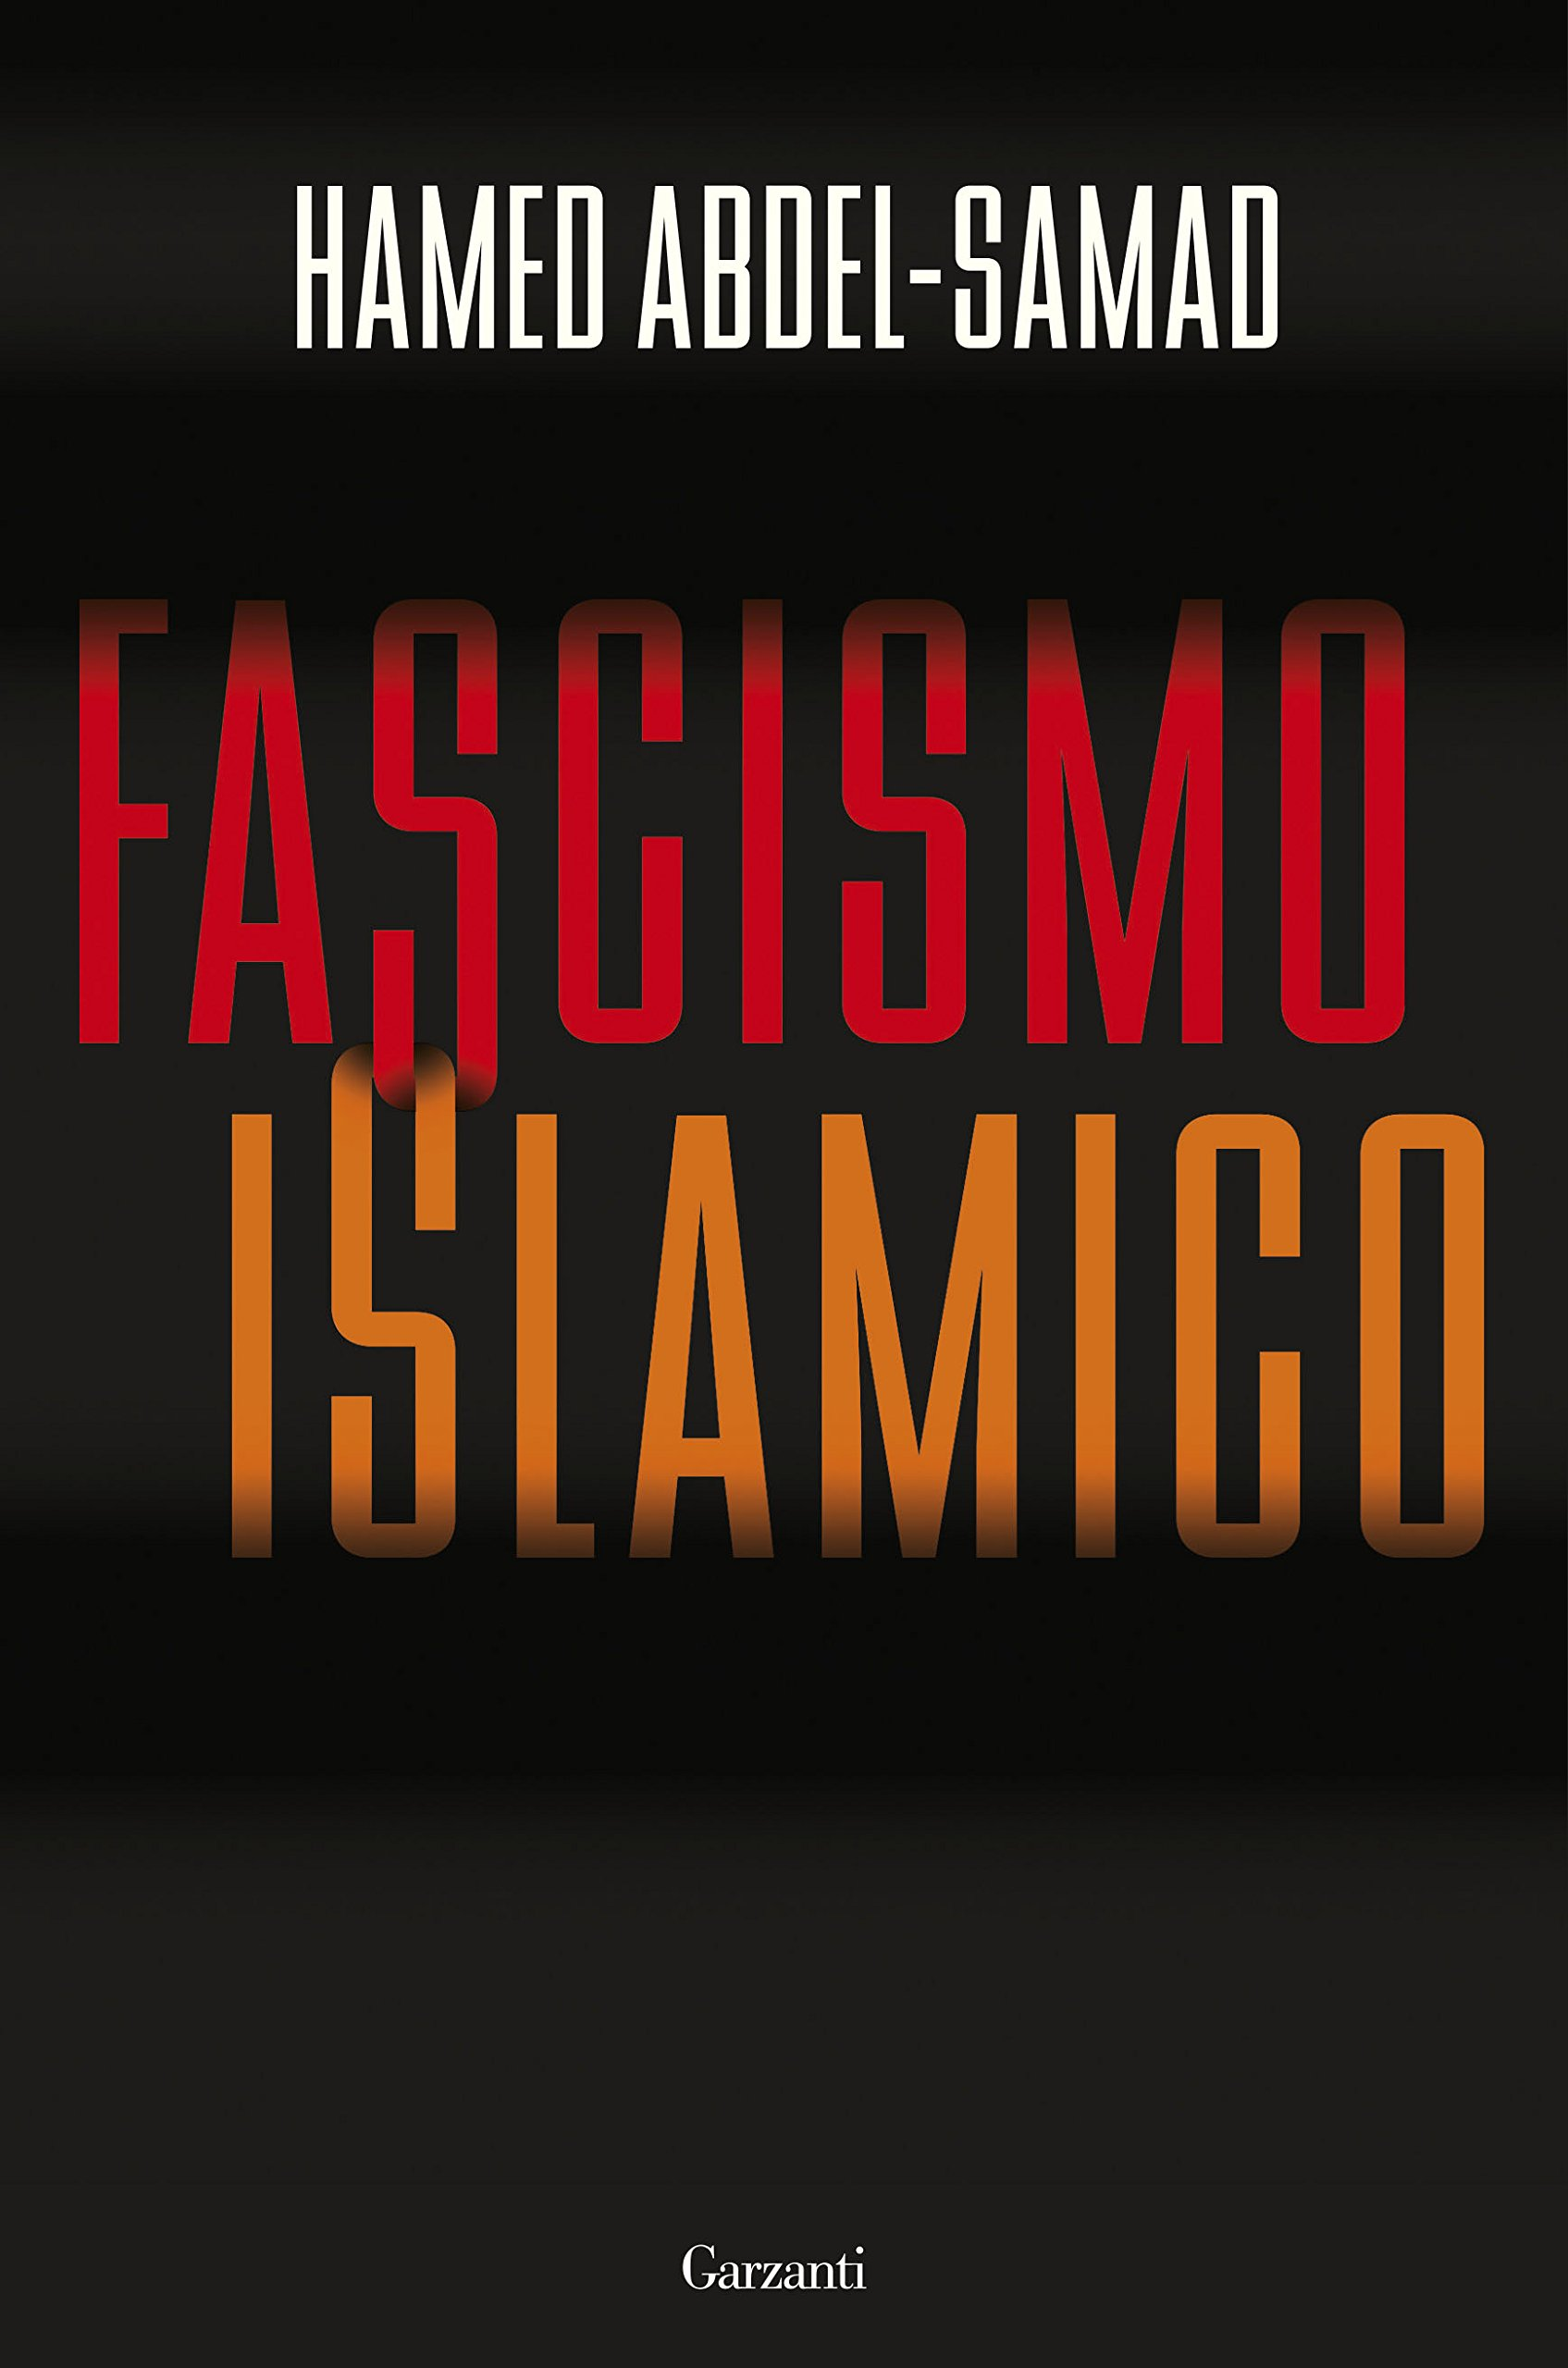 Amazon.it: Fascismo islamico - Abdel-Samad, Hamed, Ujka, C. - Libri